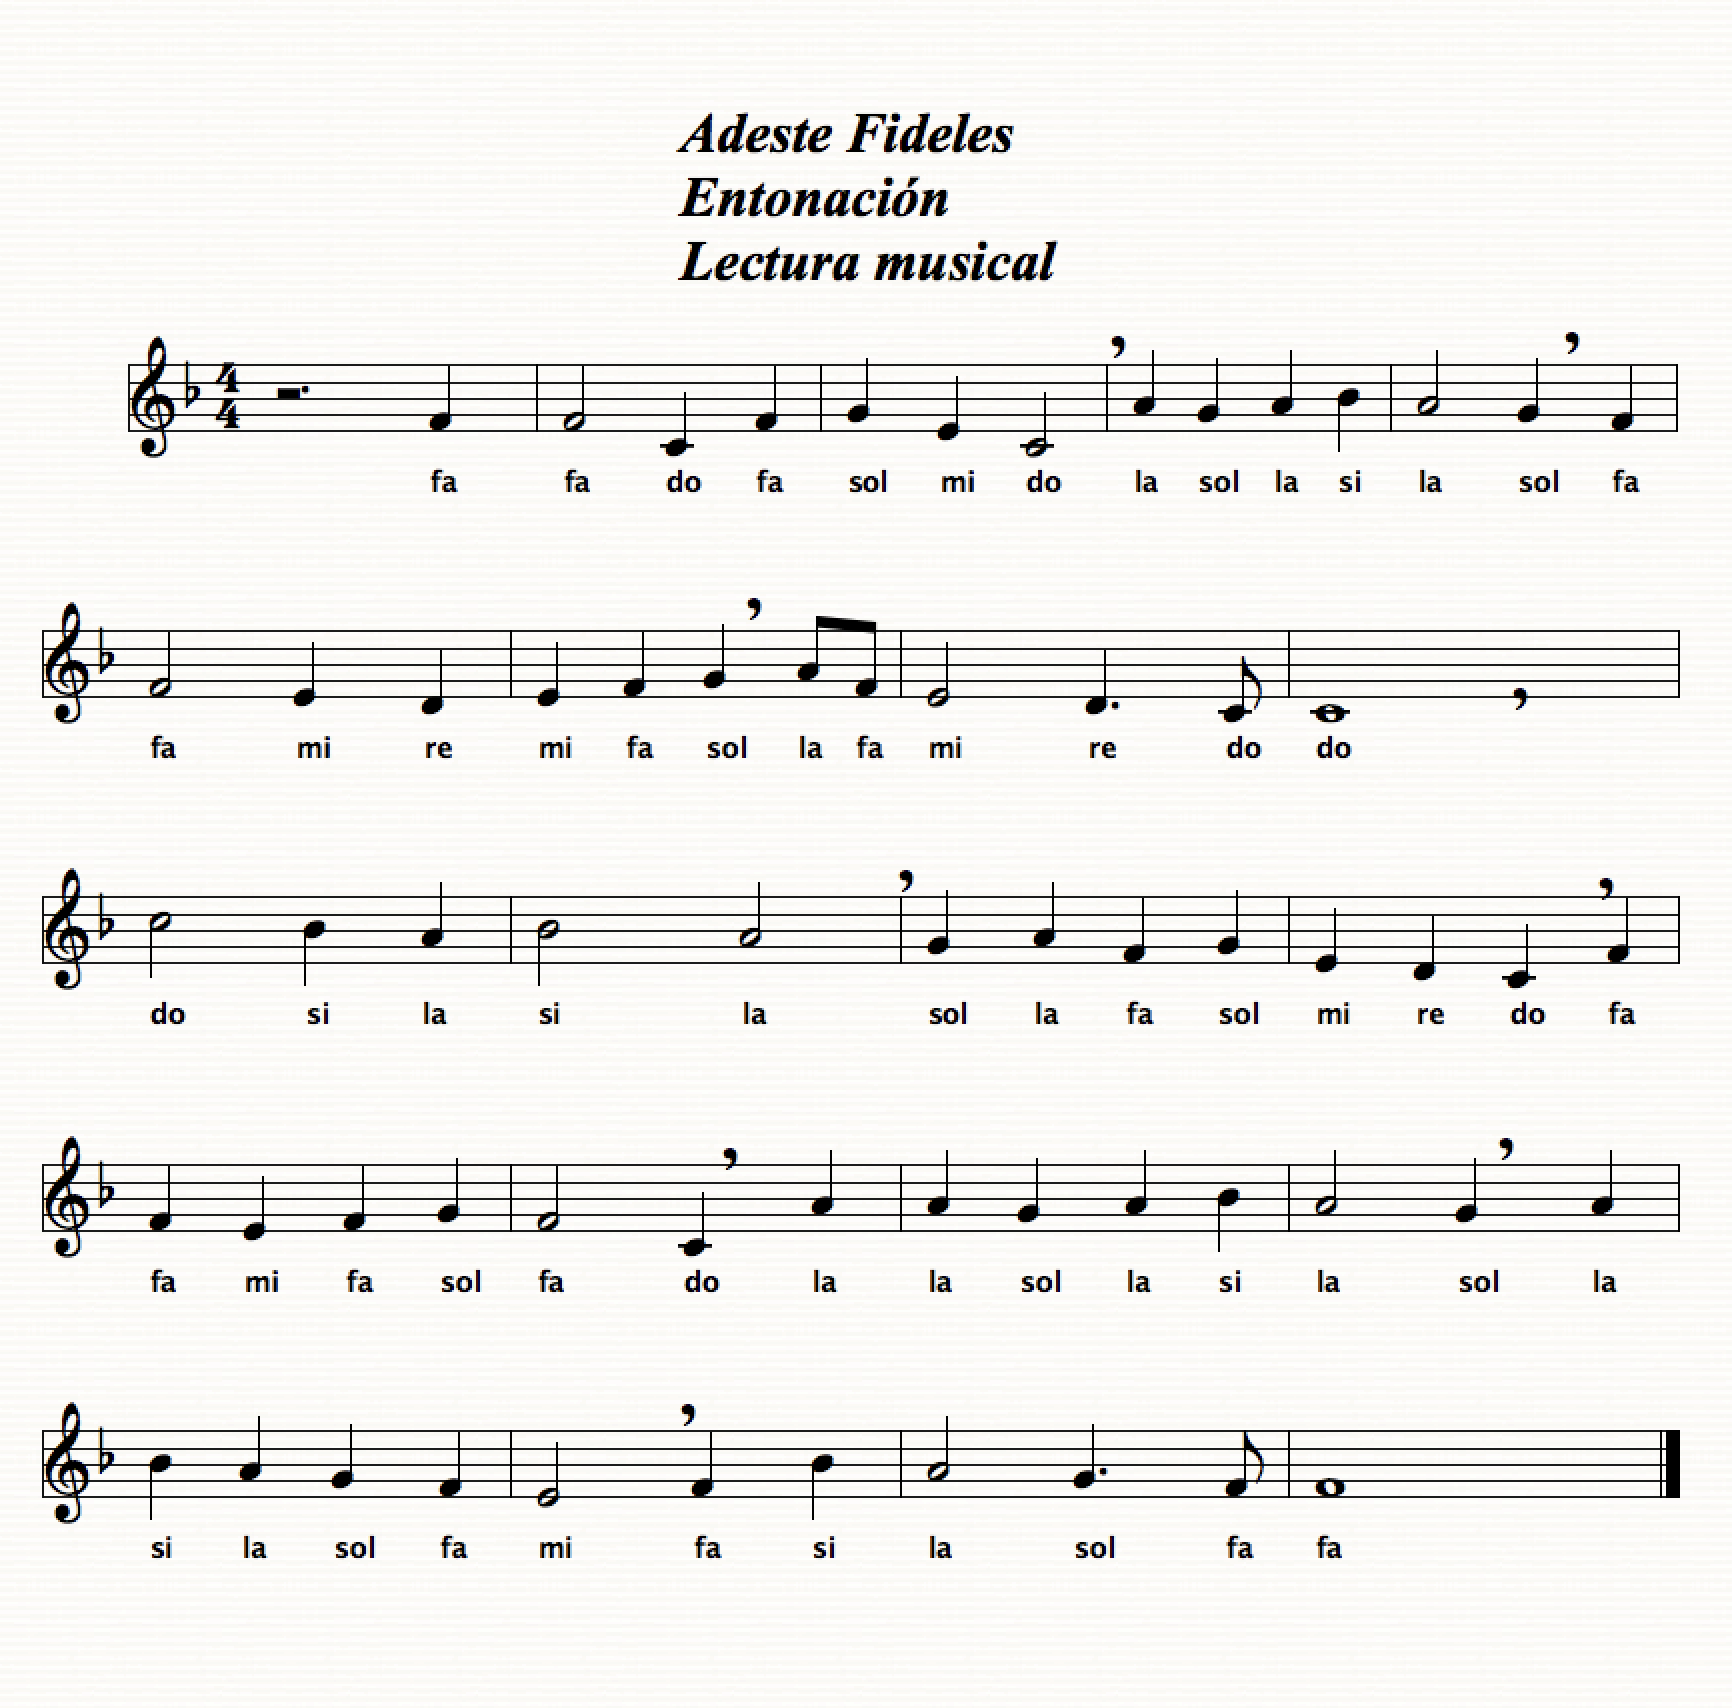 adeste fideles lectura musical.png